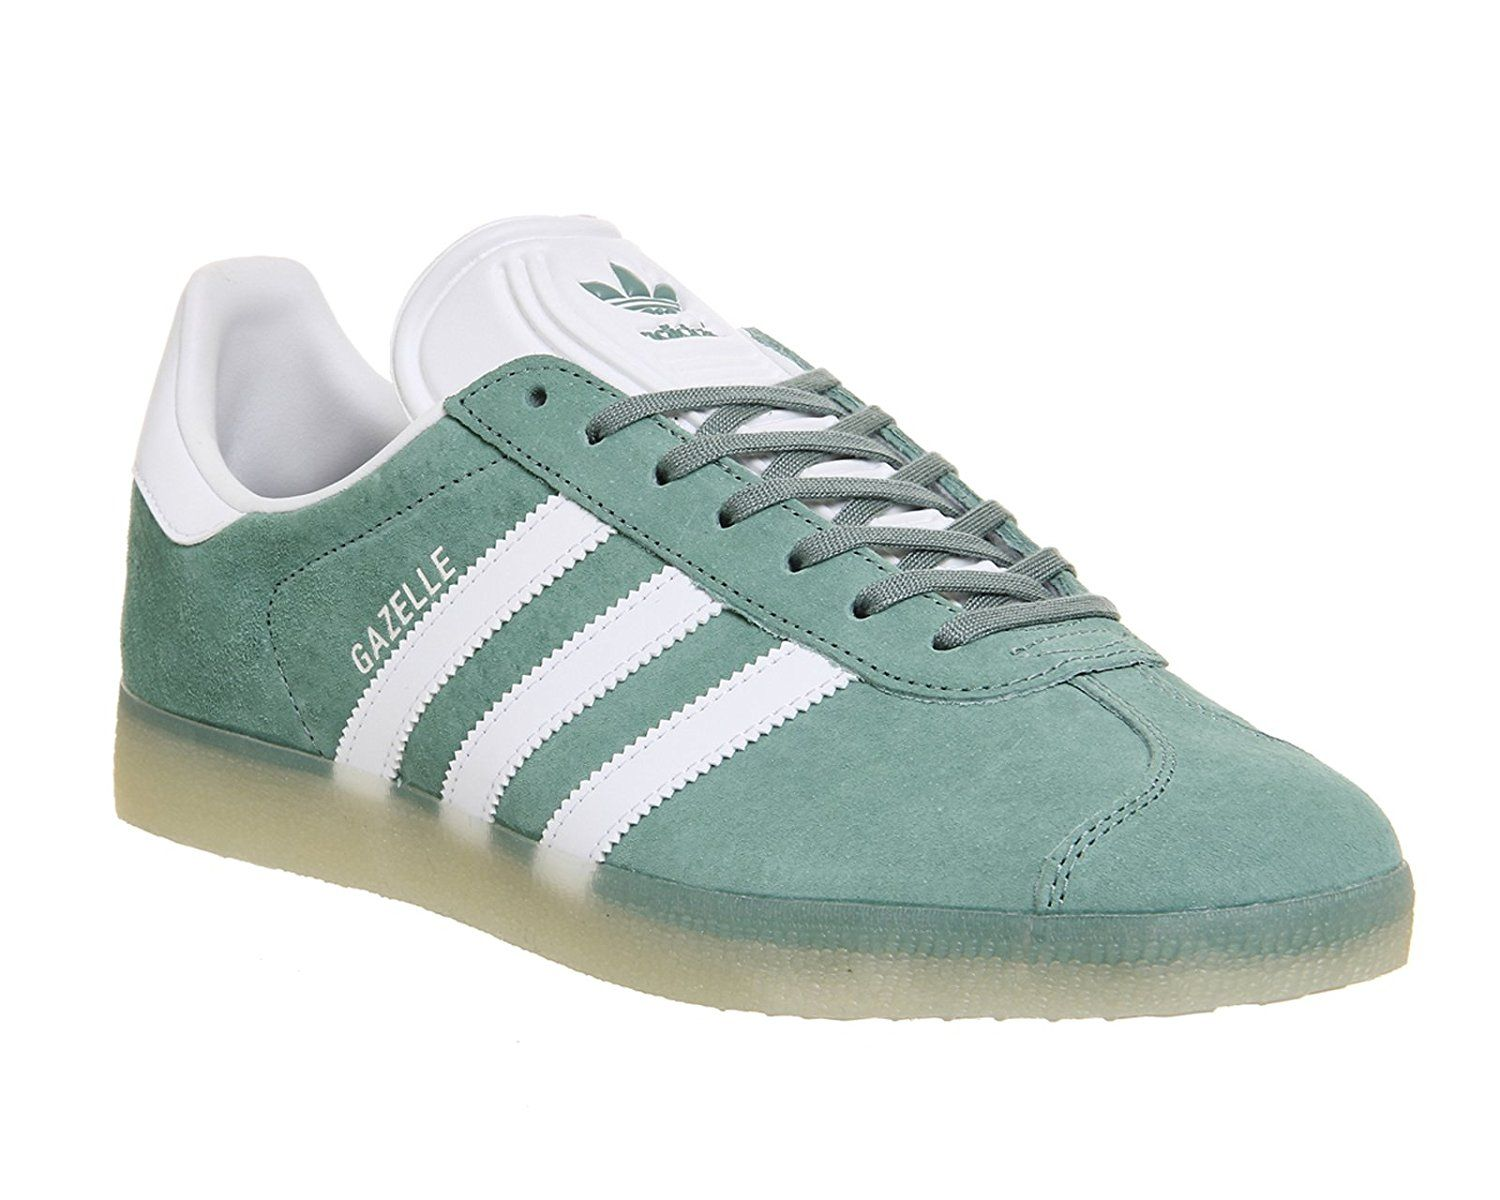 a9aeab7db07c adidas Unisex Adults' Gazelle Low-Top Sneakers: Amazon.co.uk: Shoes ...